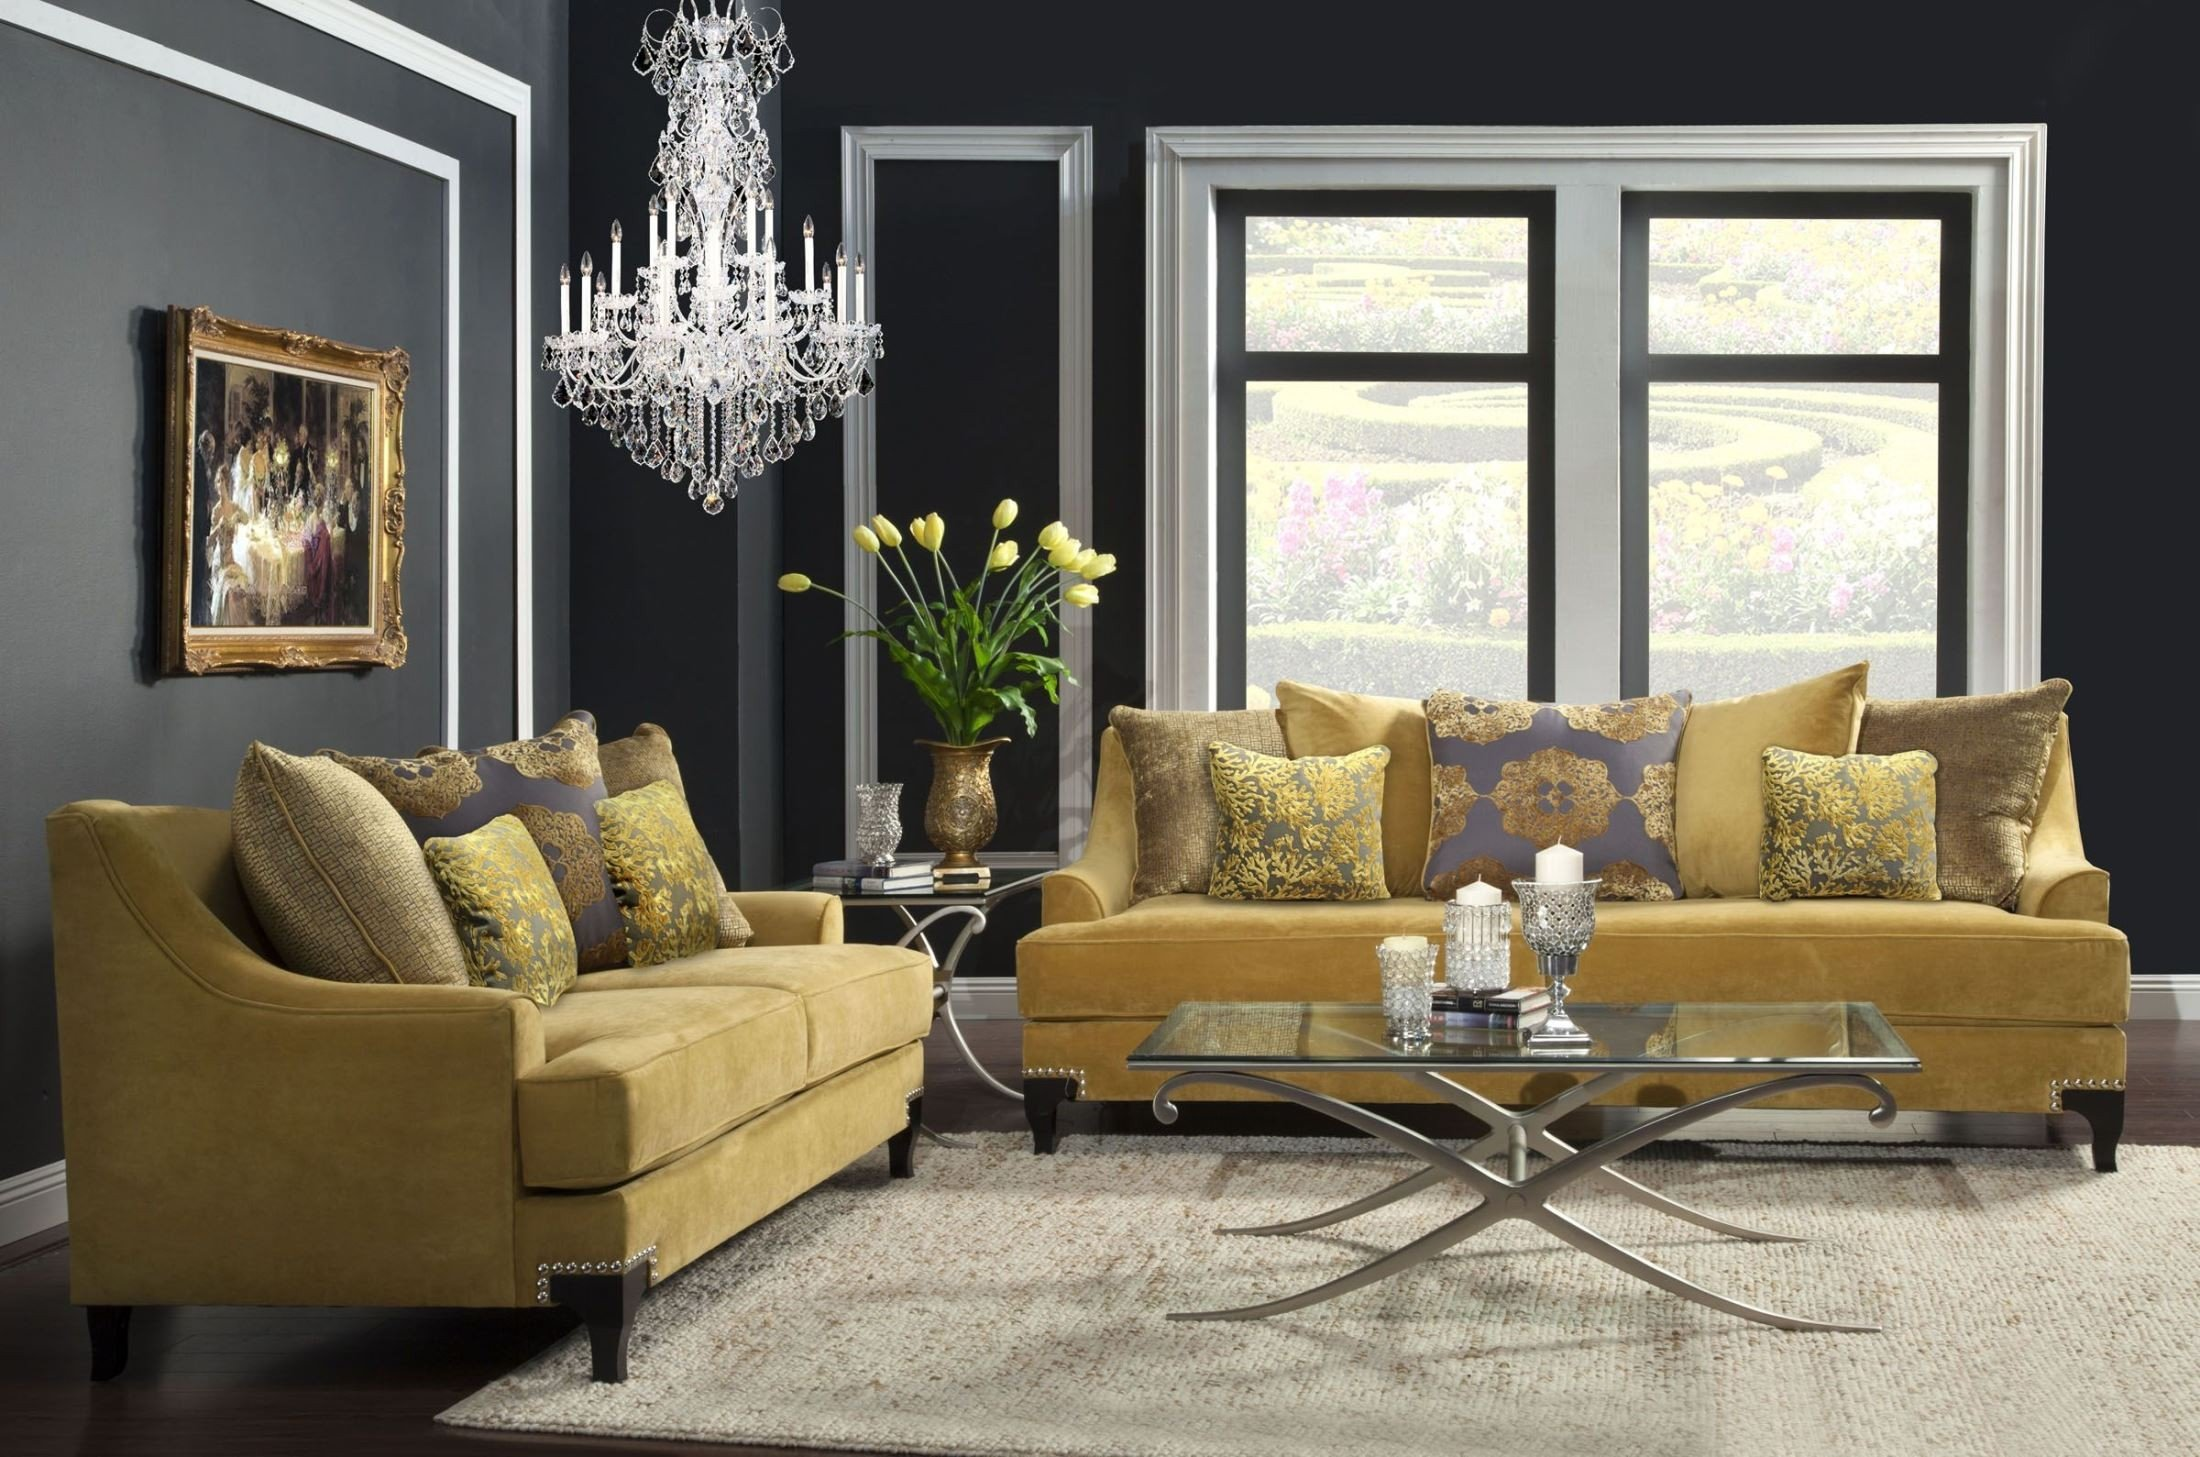 Prime Viscontti Gold Living Room Set Interior Design Ideas Tzicisoteloinfo